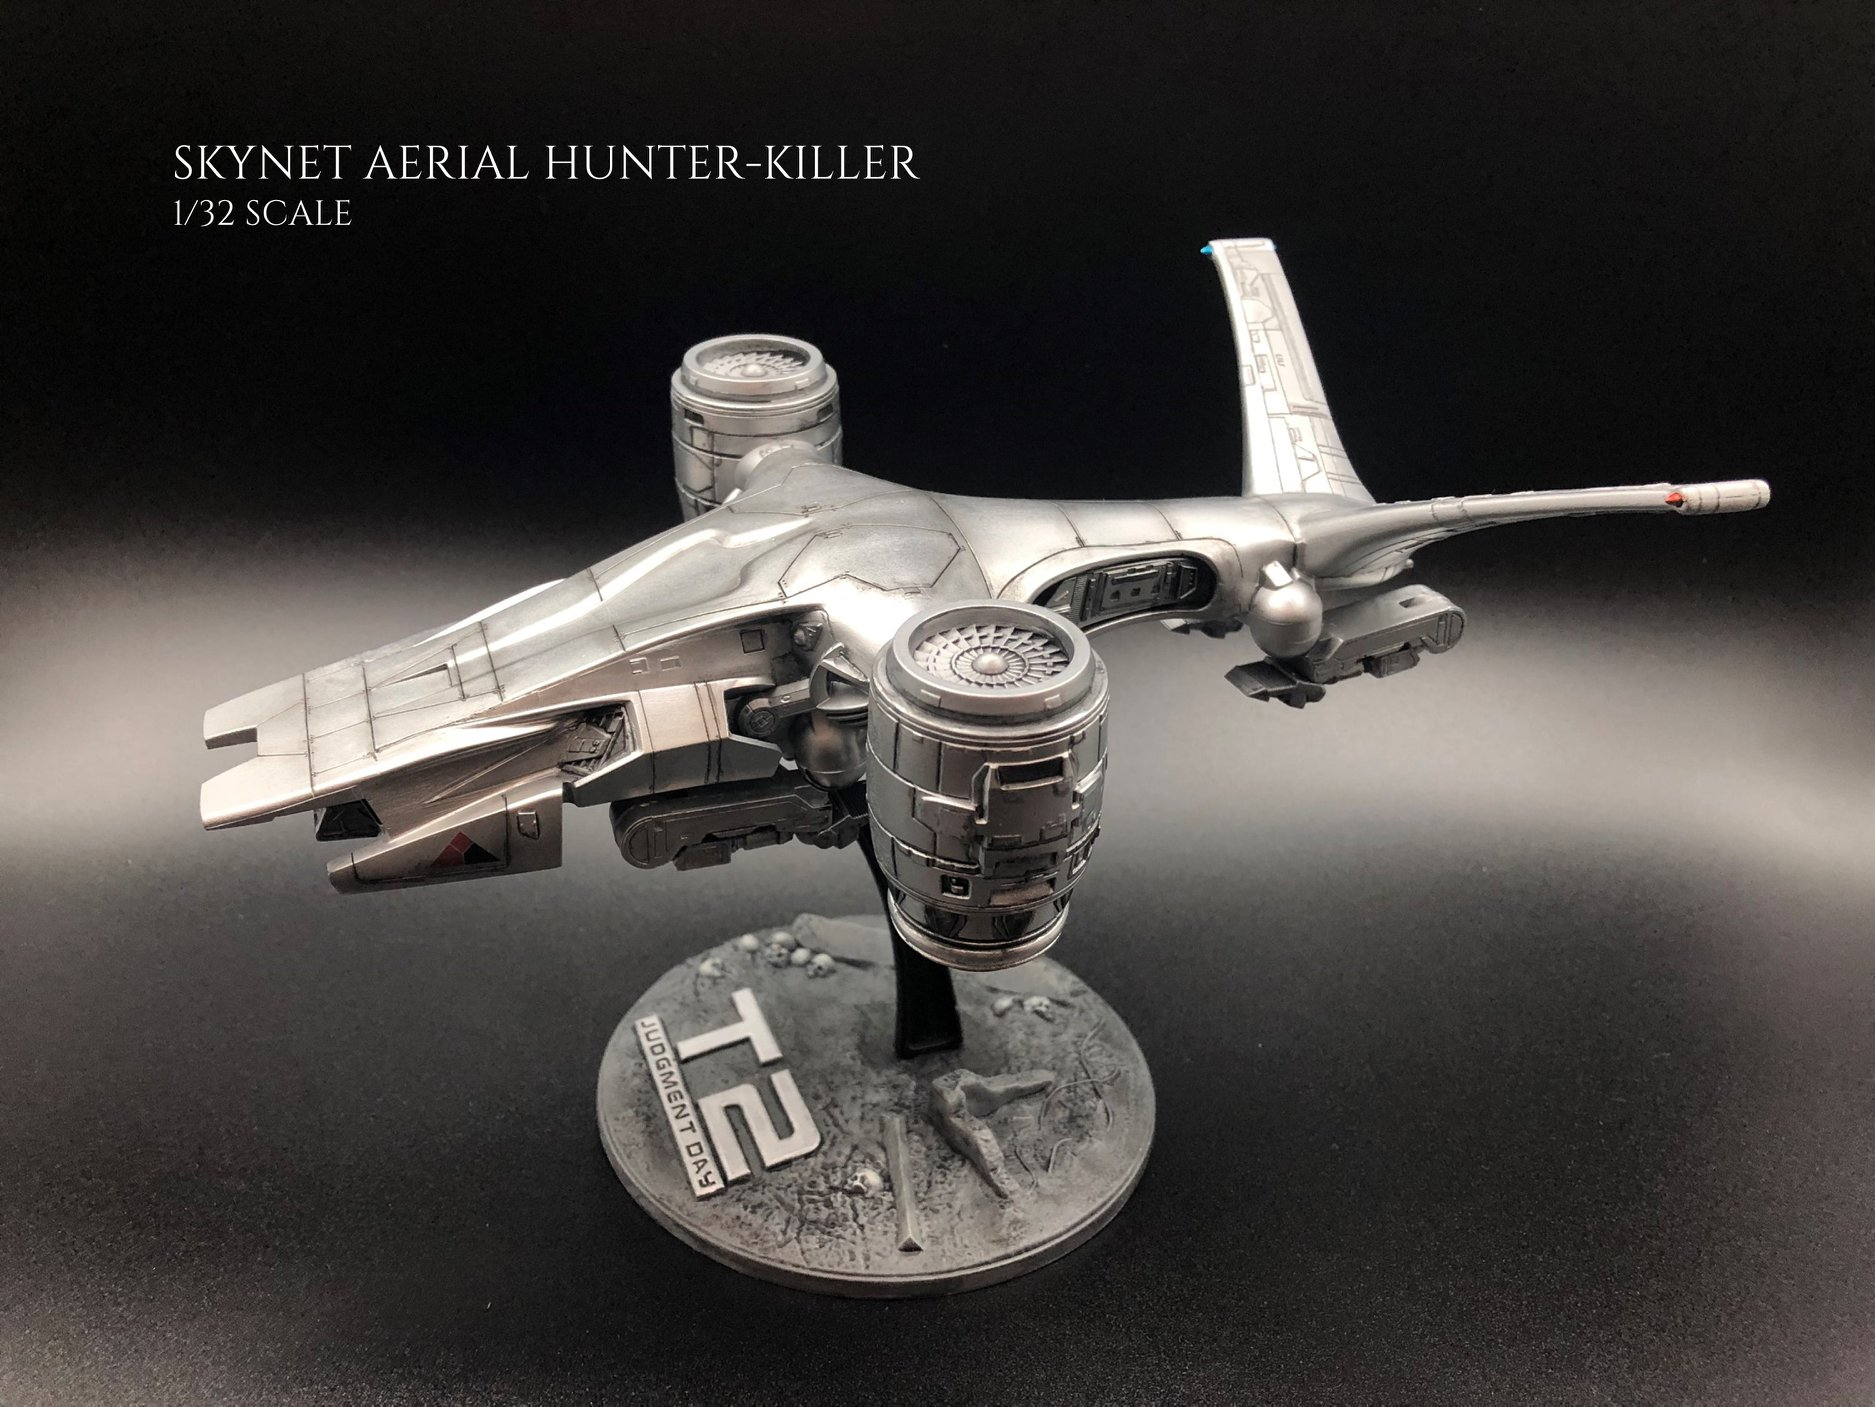 Skynet Hunter Killer (Pegasus Hobbies) autor: Wunji Lau